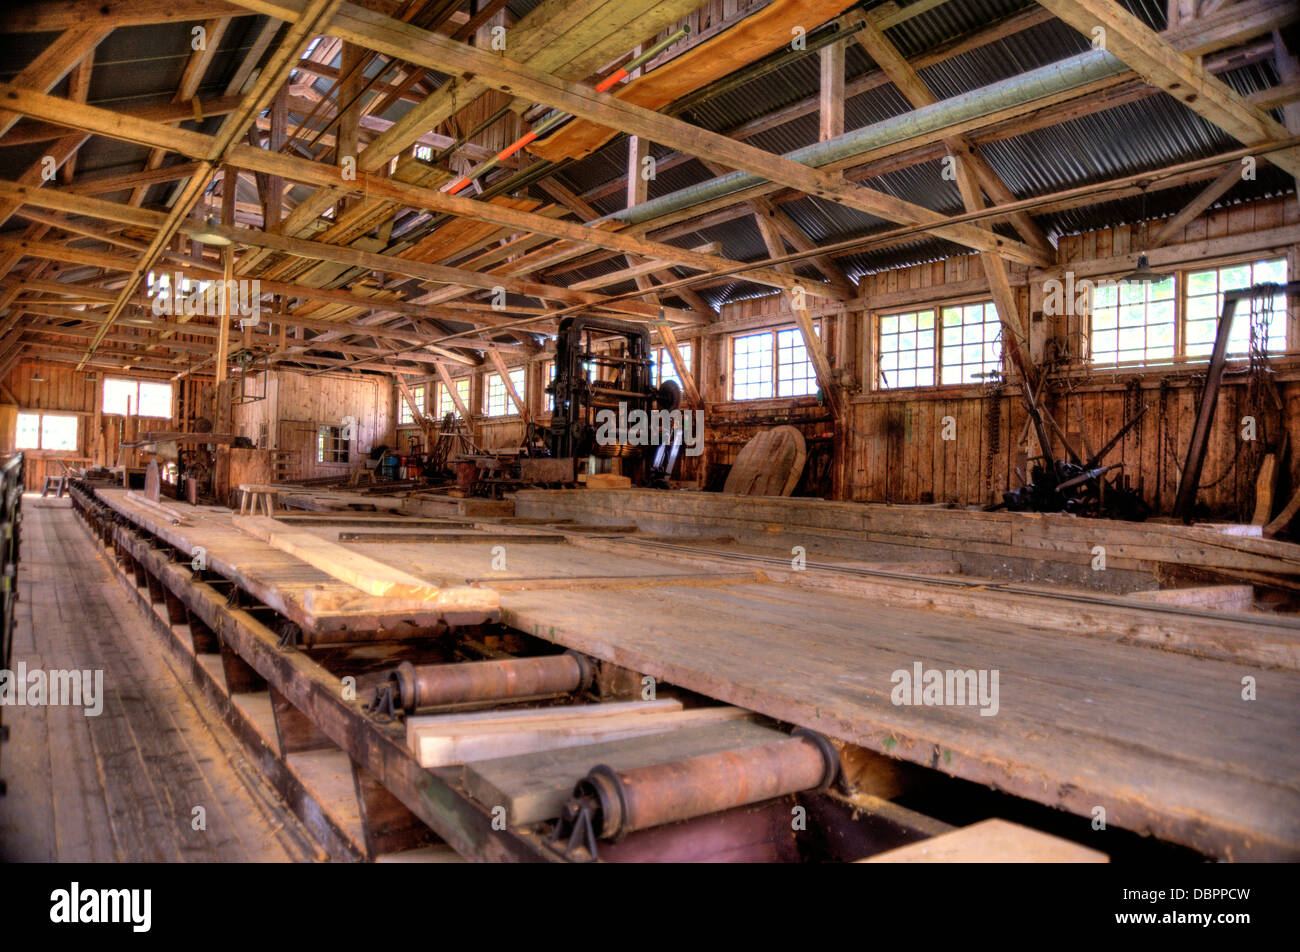 Interior of an old Lumber Mill Stock Photo